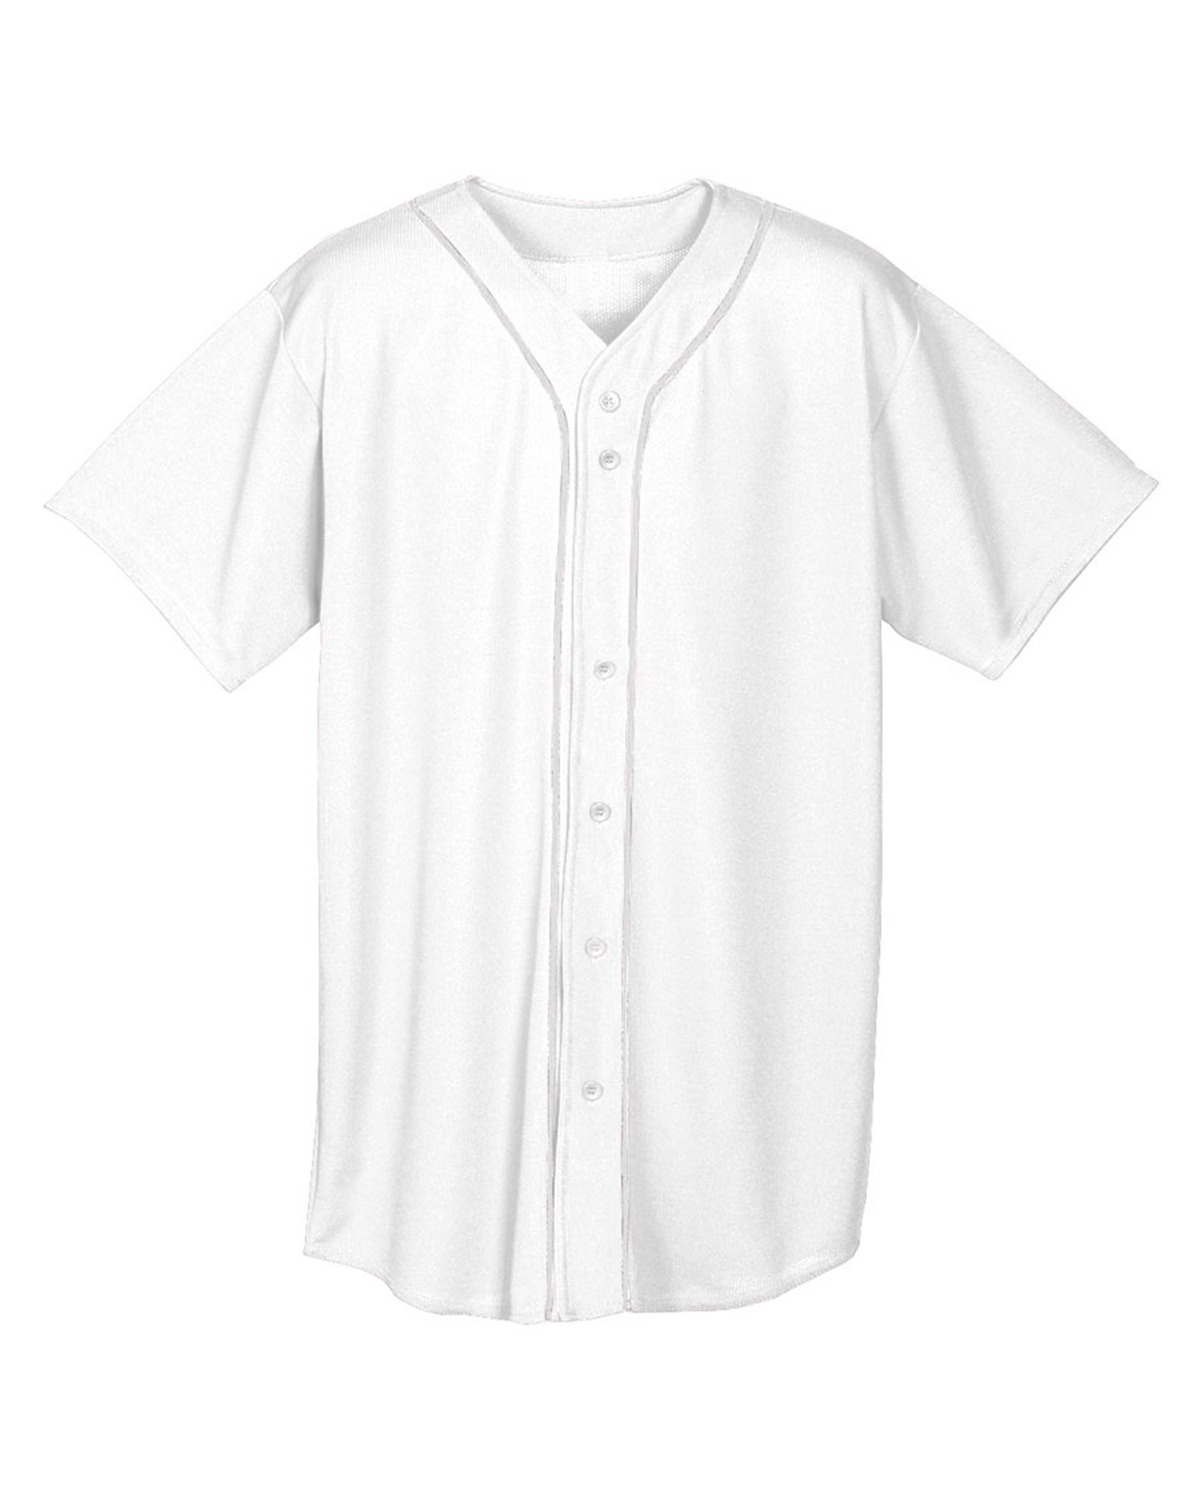 Youth Short Sleeve Full Button Baseball Jersey